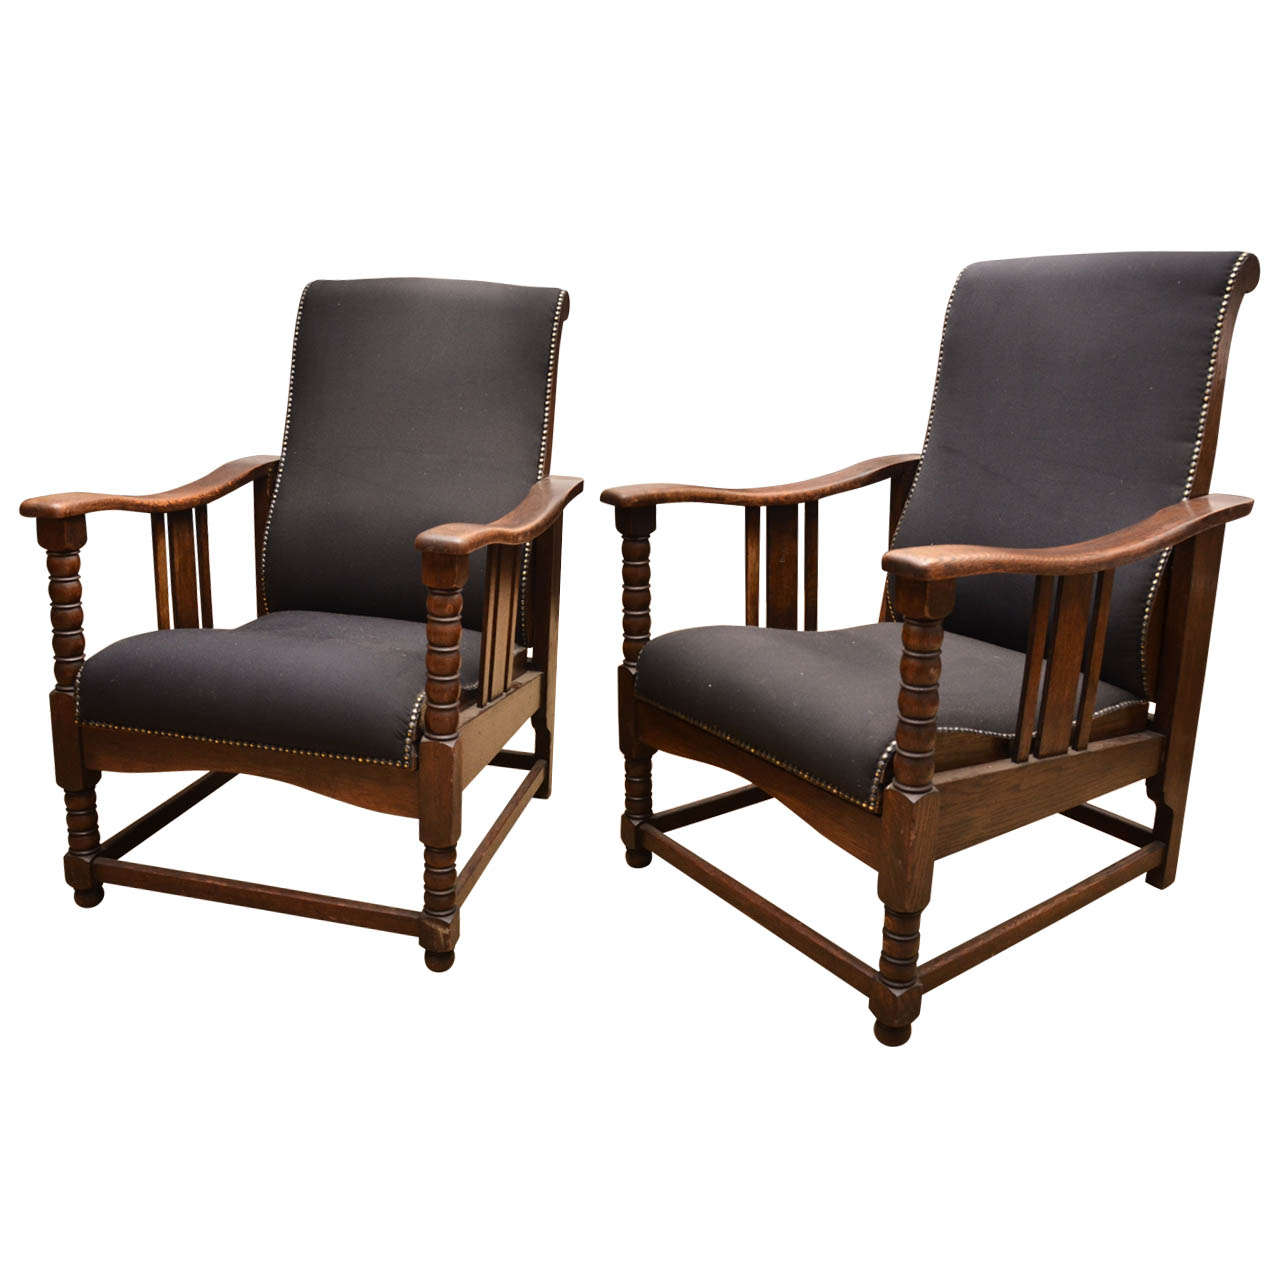 Arts and crafts chairs - 1920s Pair Of Arts Crafts Upholstered Oak Reclining Chairs 1